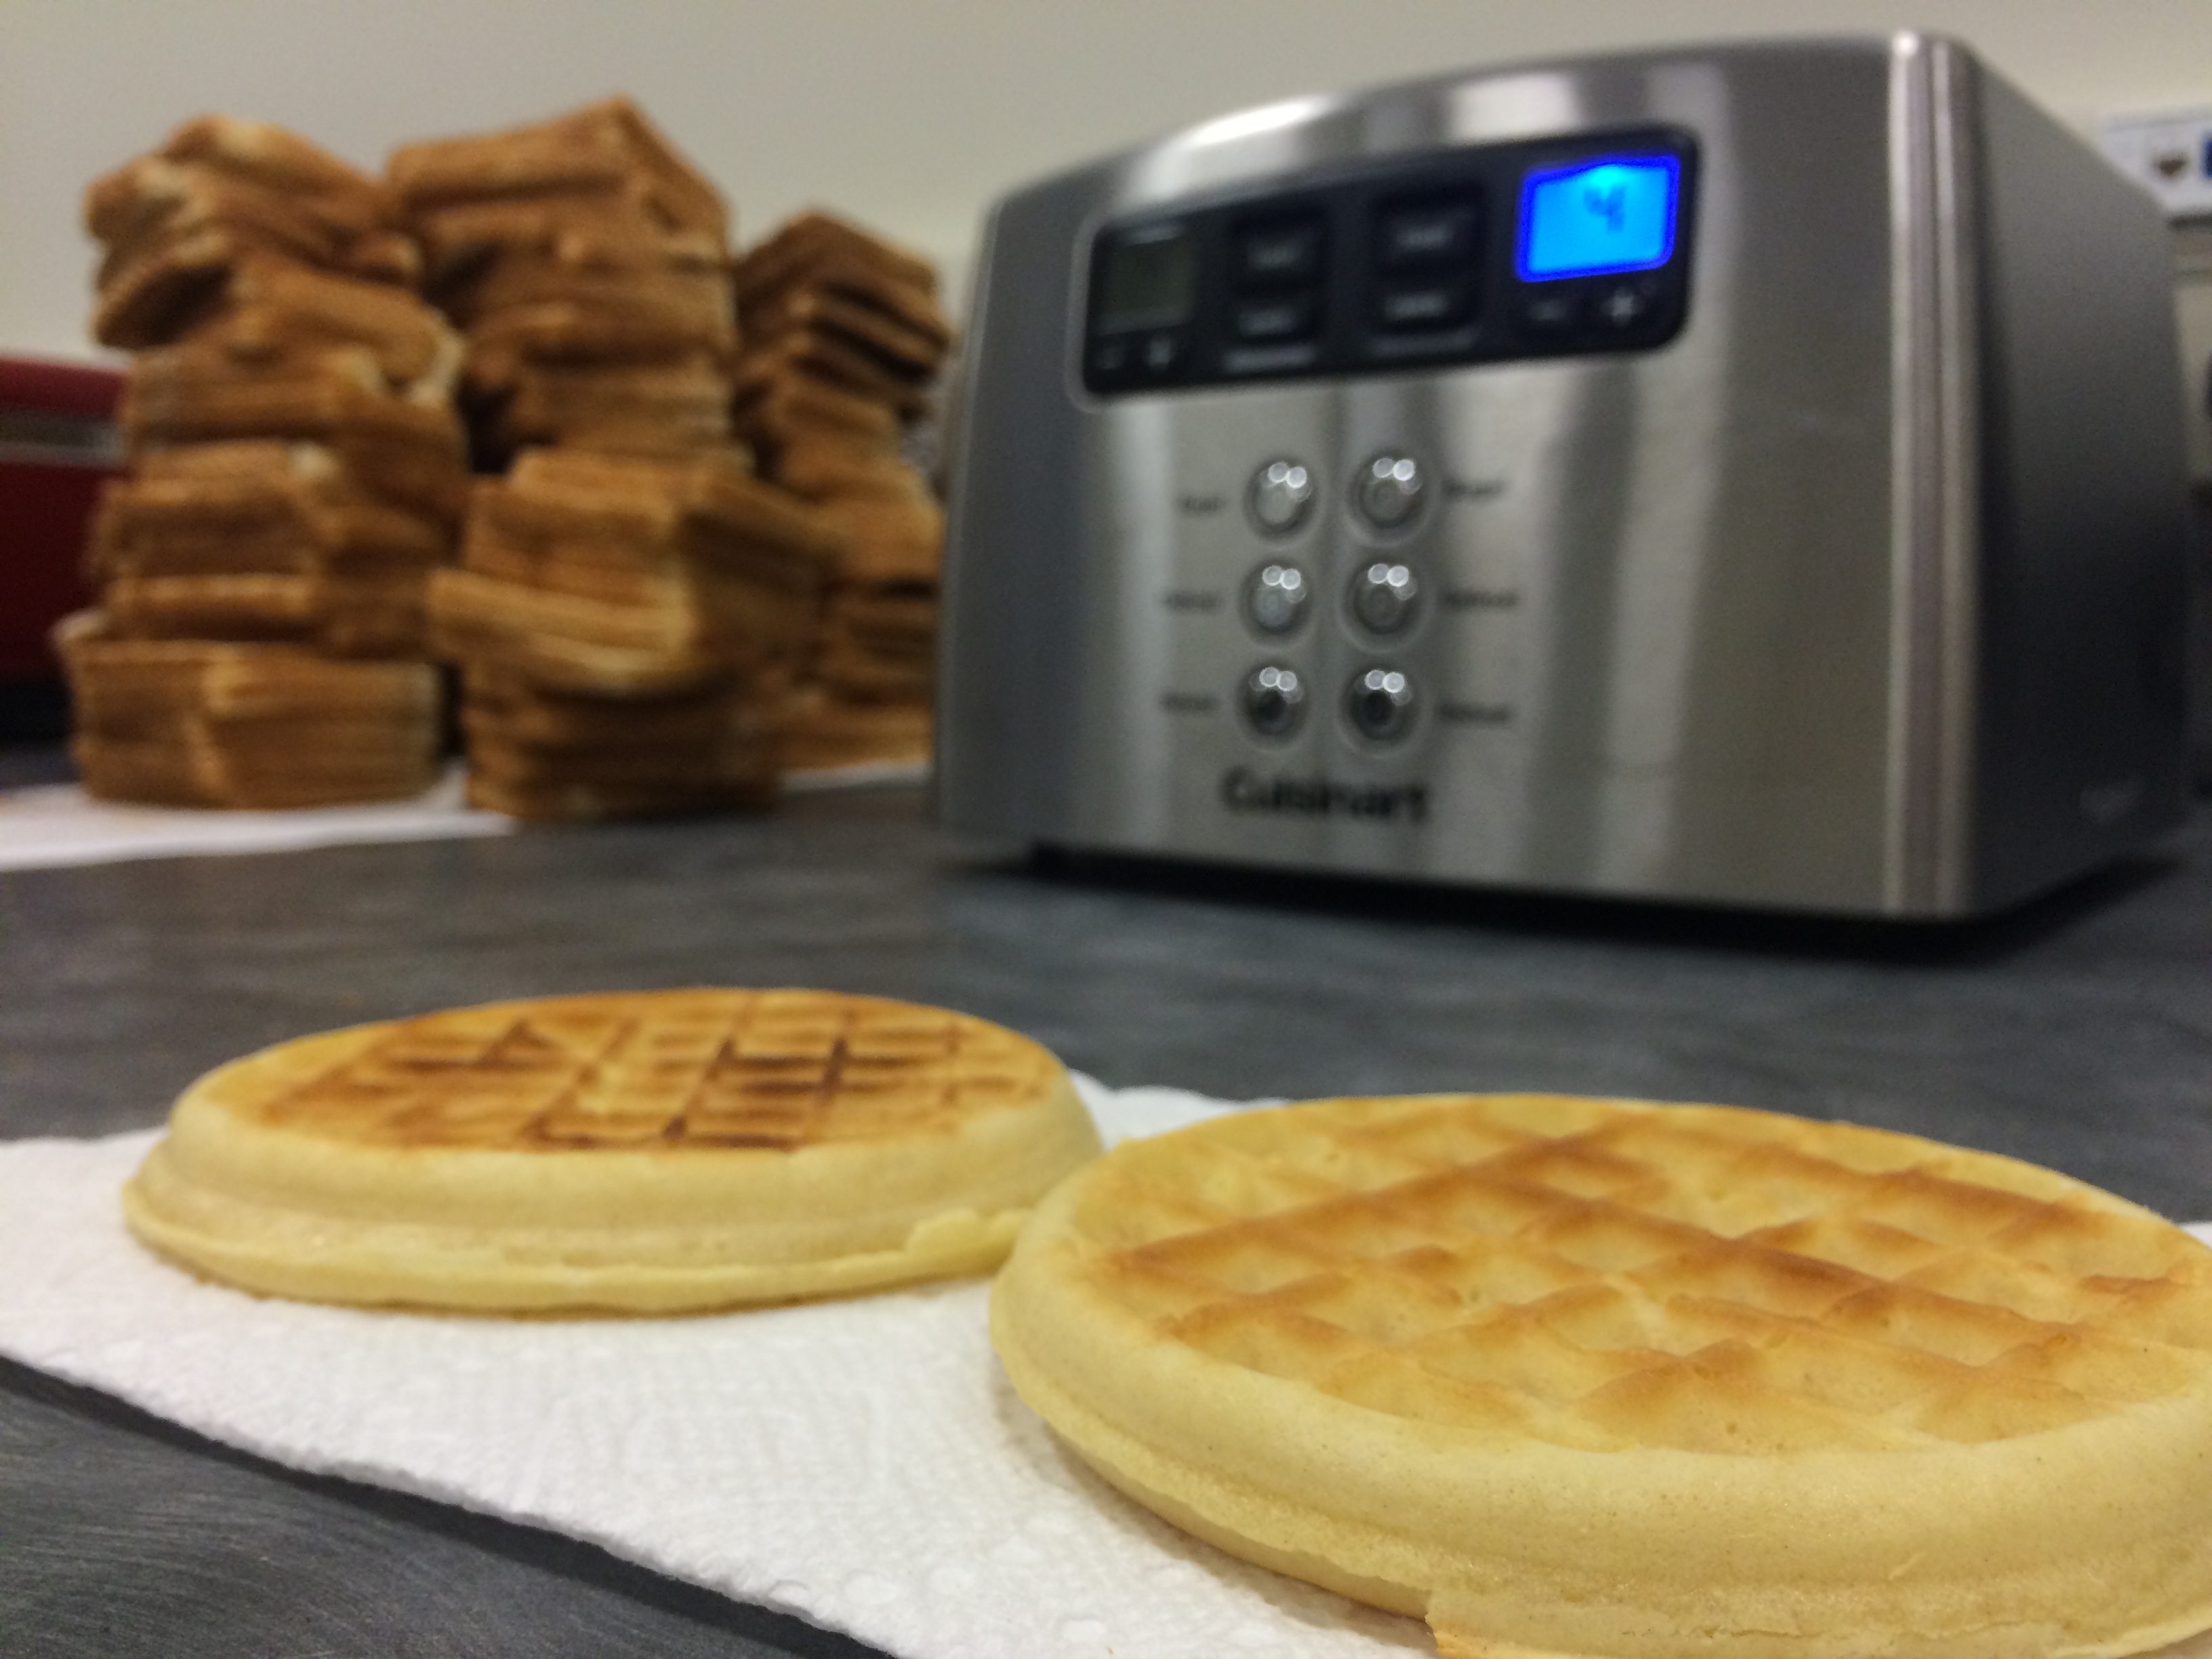 cuisinart-cpt-440-toaster-waffle-glam.jpg